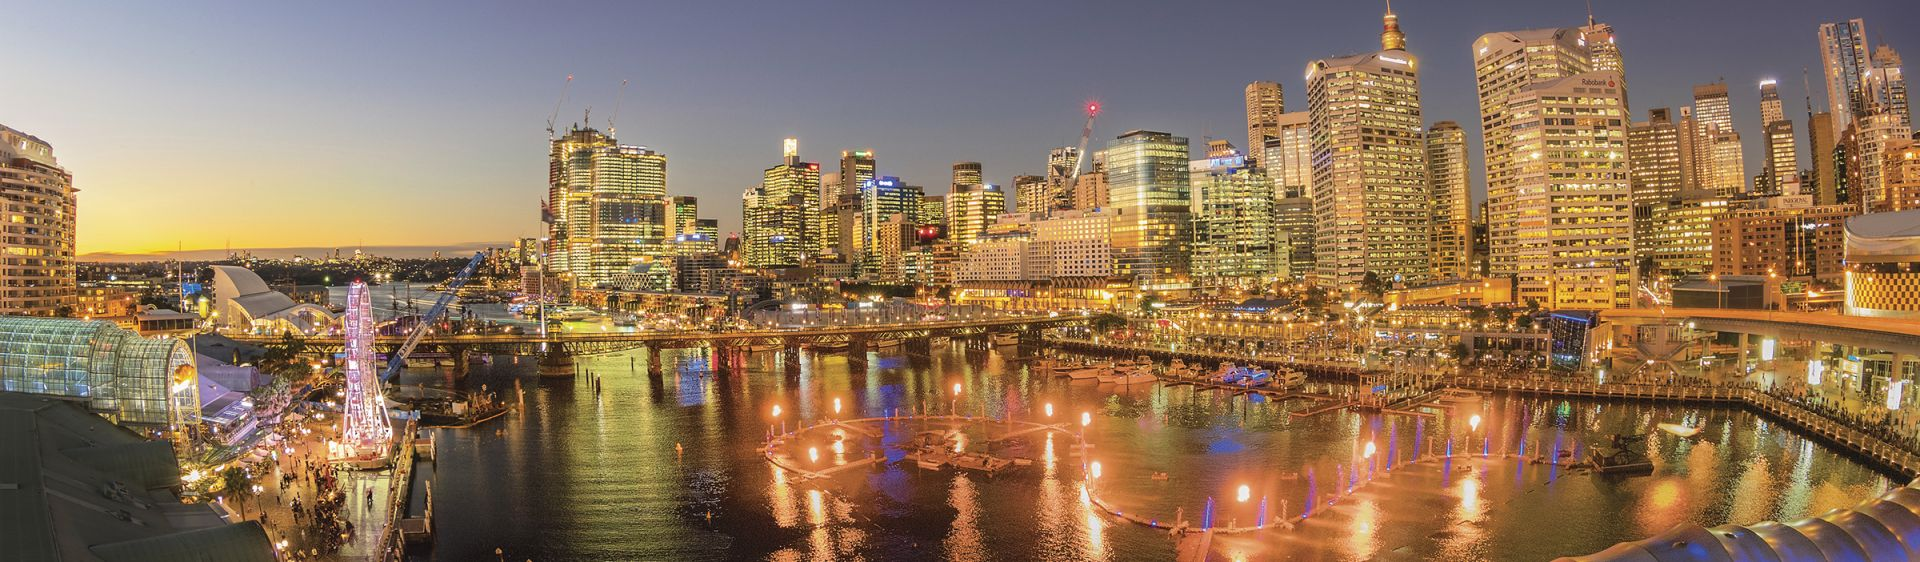 Darling Harbour, Vivid Sydney